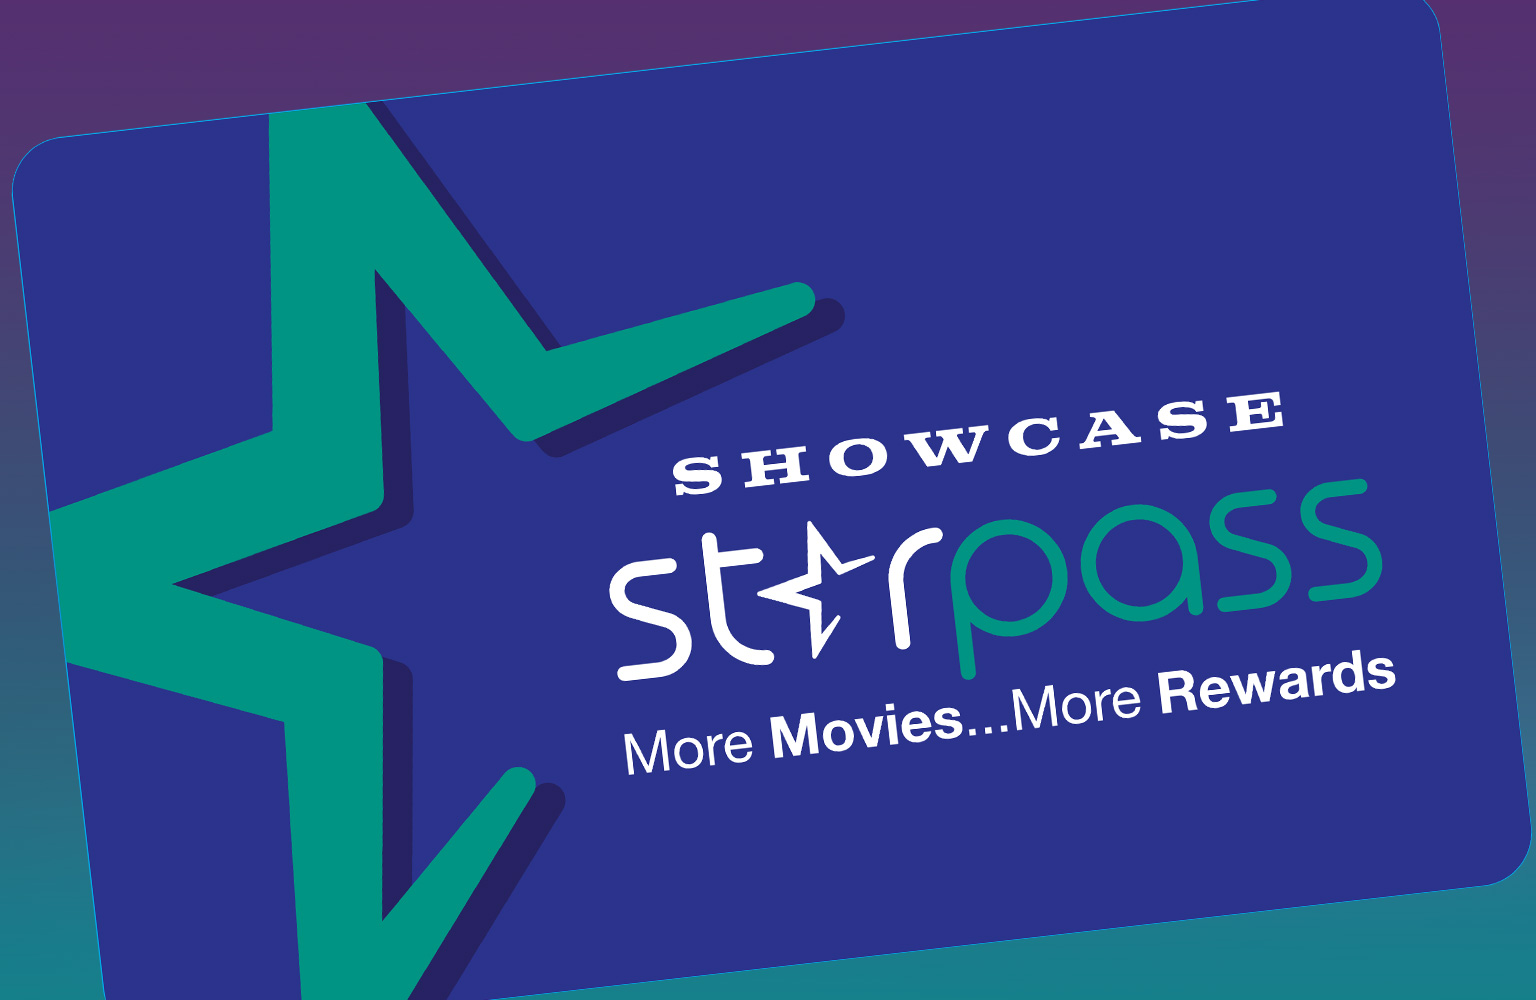 Showcase Starpass Loyalty Program - more movies, More rewards